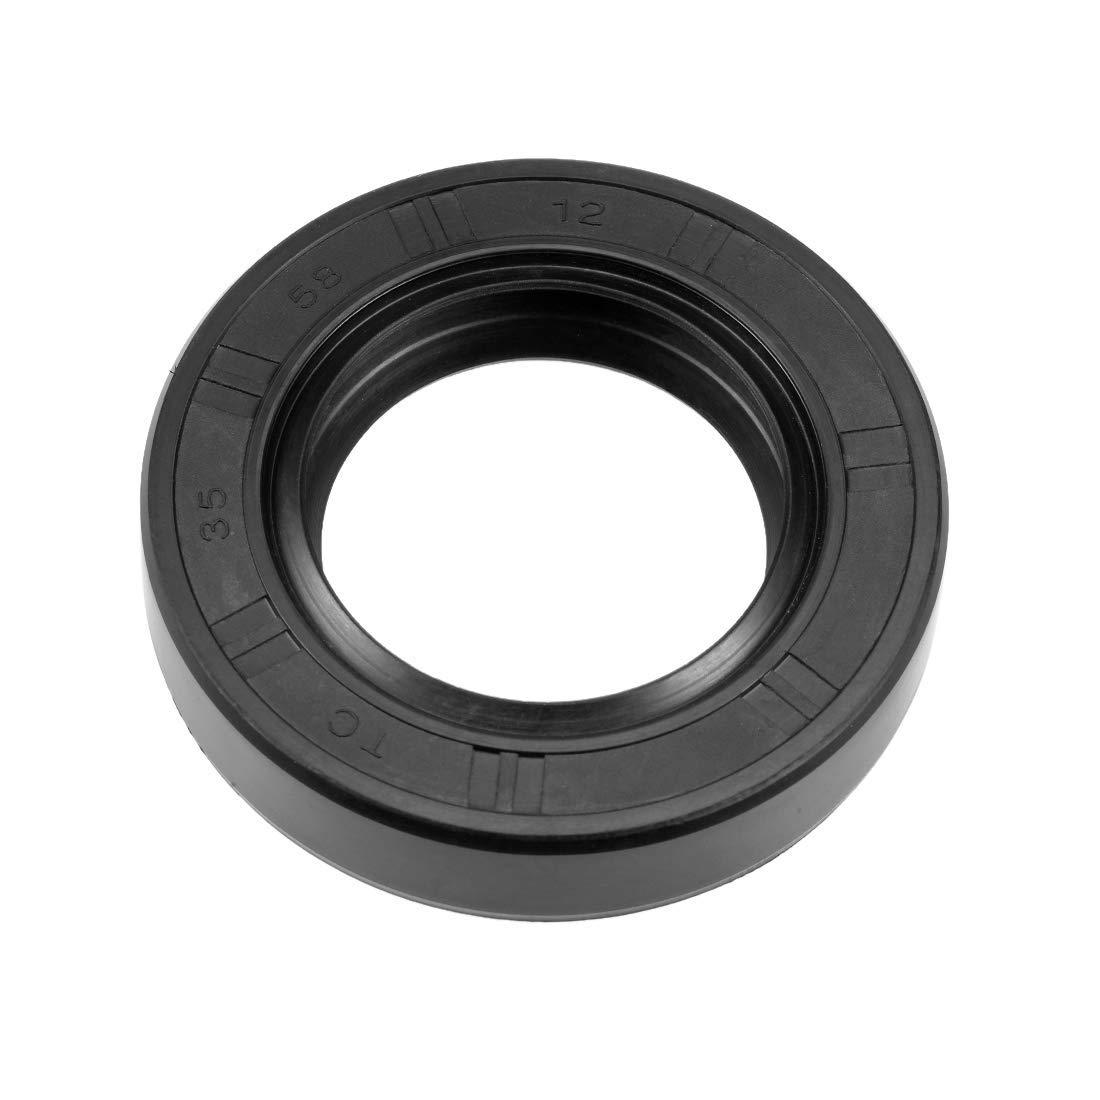 Oil Seal Double Lip Nitrile Rubber Cover TC 35 mm x 58 mm x 12 mm